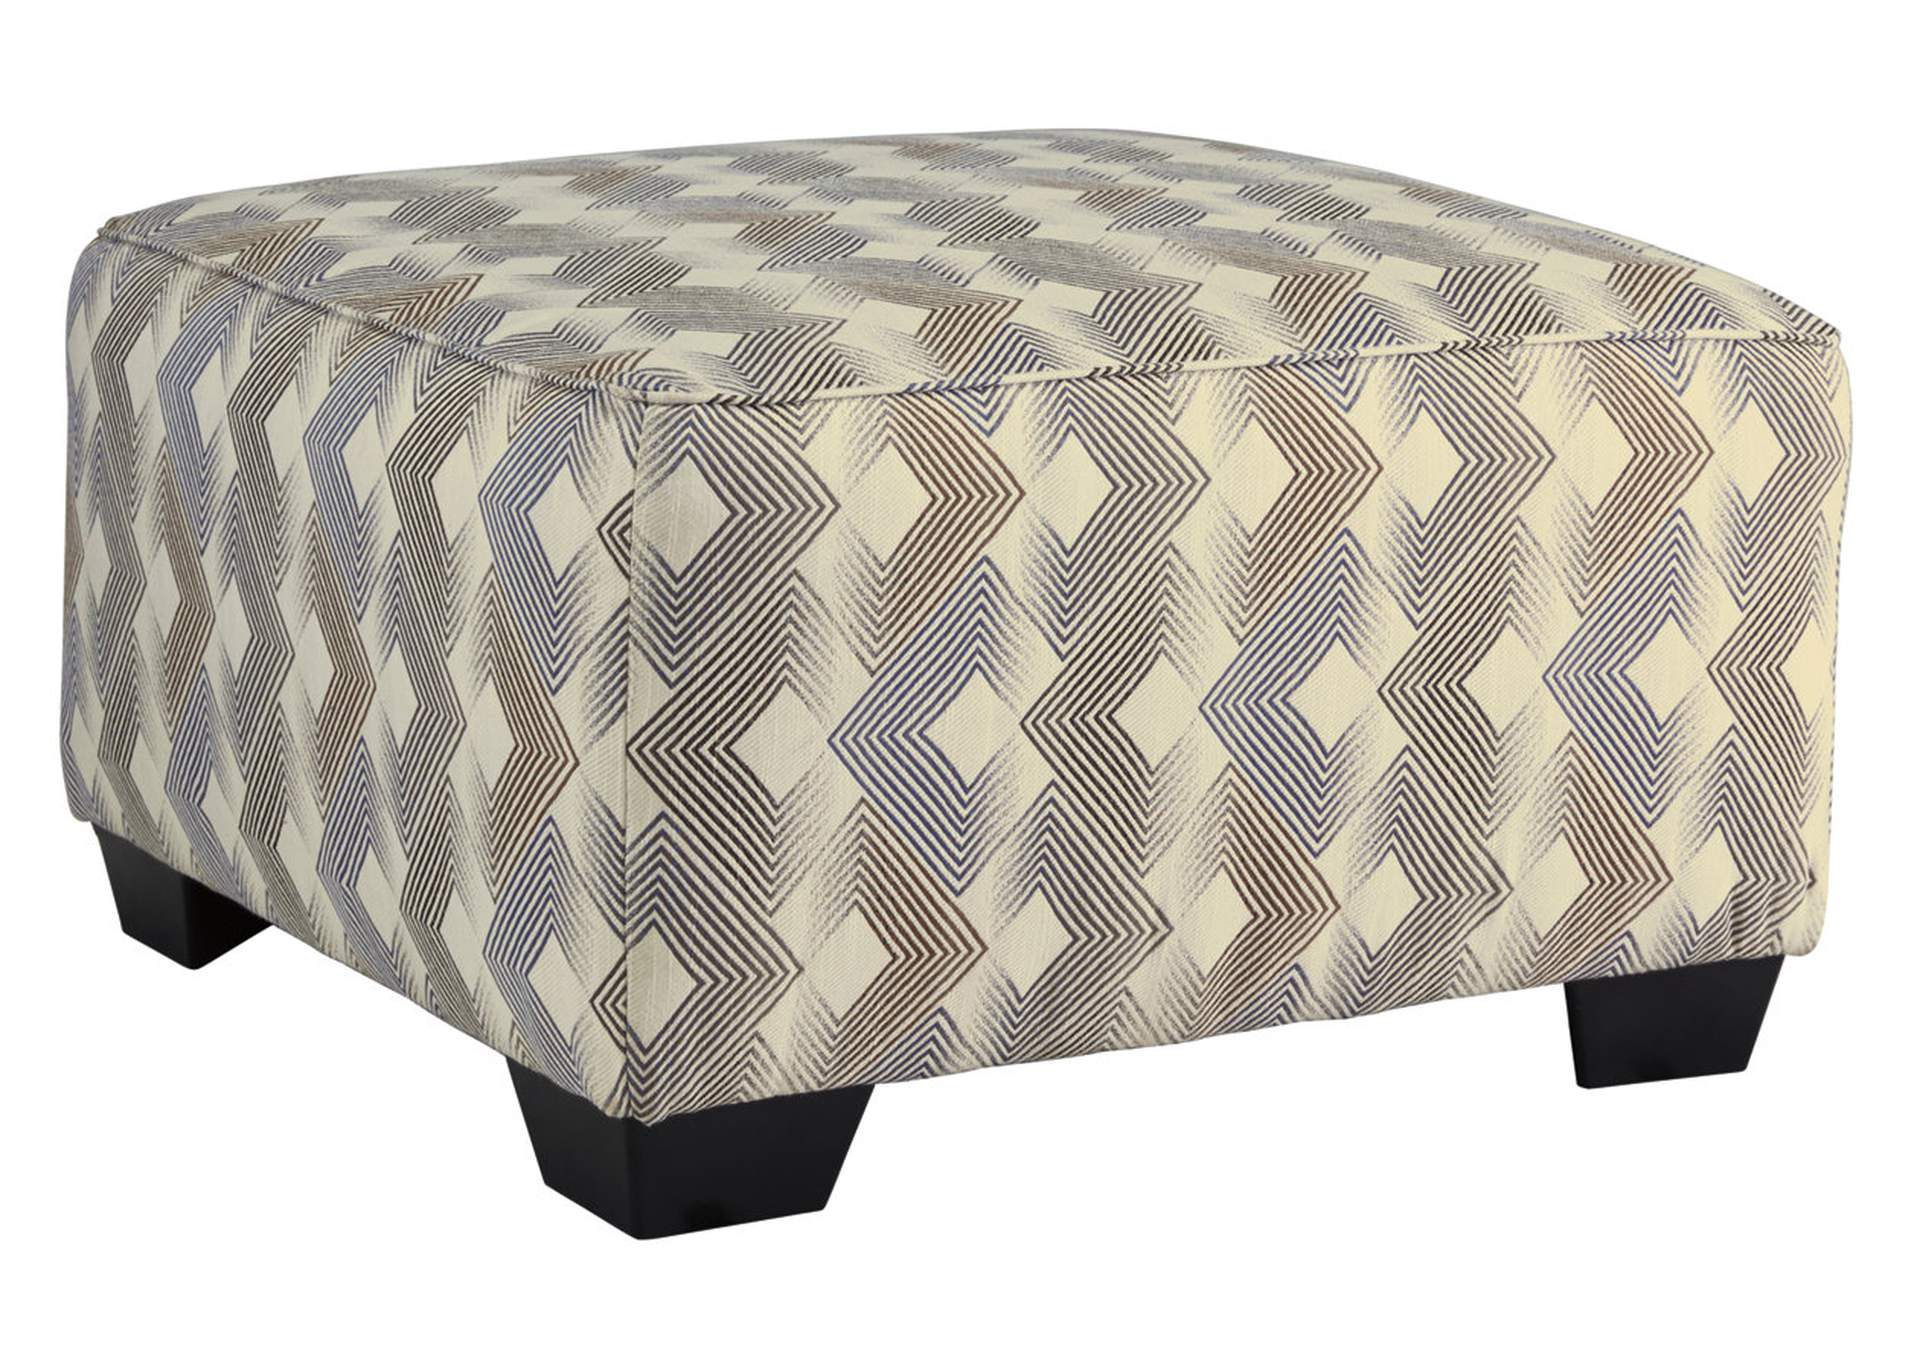 Eltmann Slate Oversized Accent Ottoman,Signature Design By Ashley